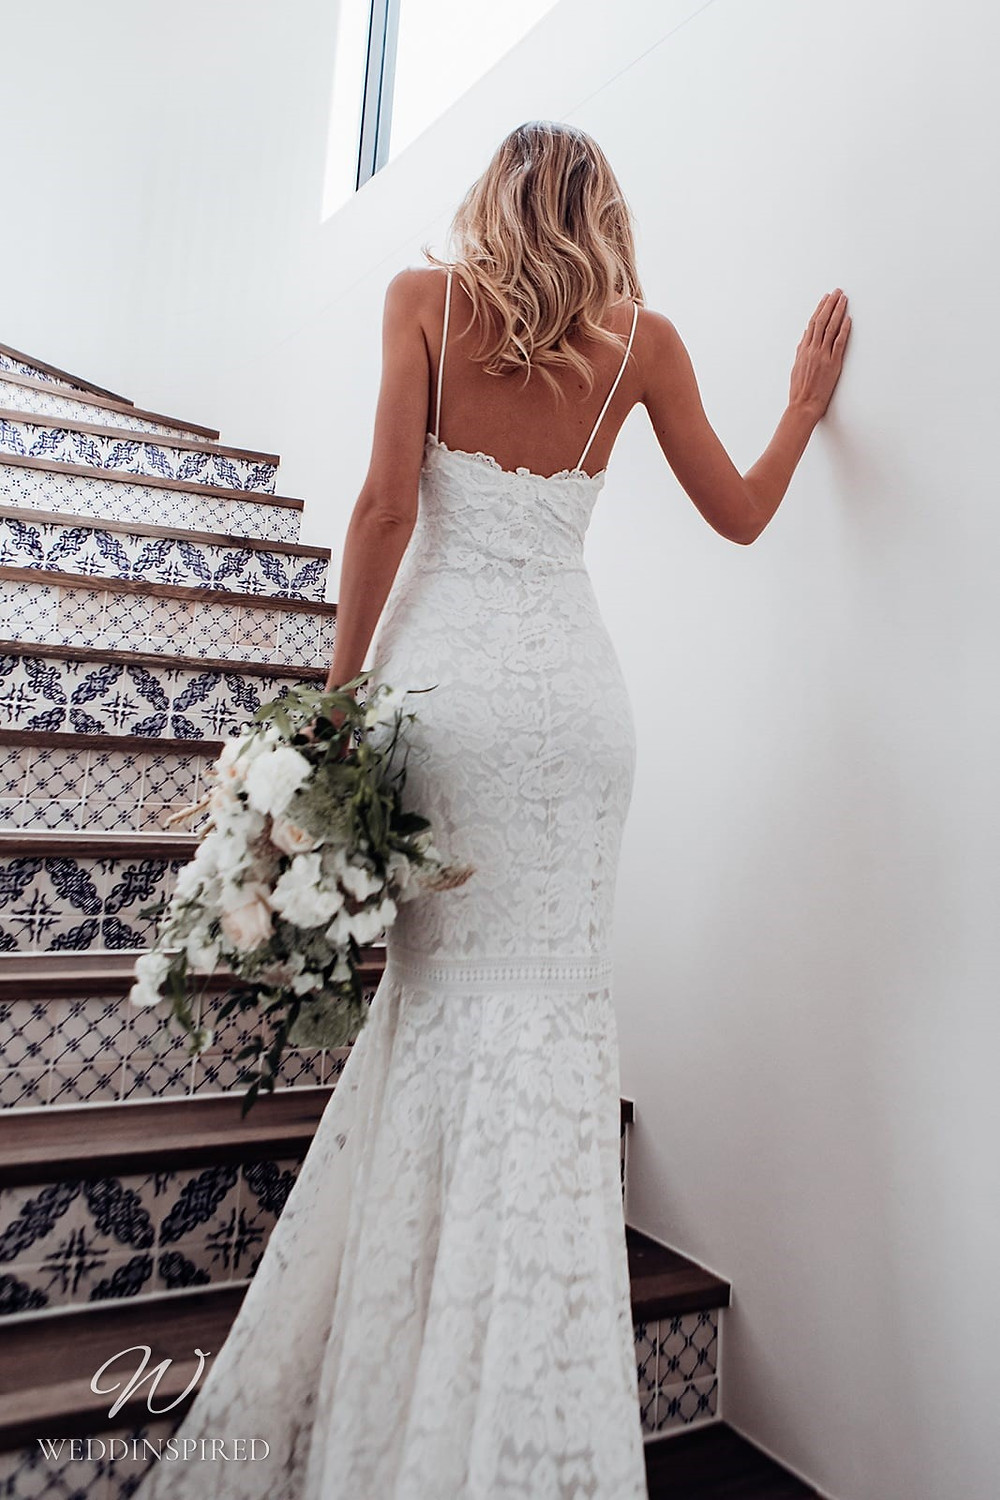 A Grace Loves Lace mermaid lace wedding dress with thin spaghetti straps